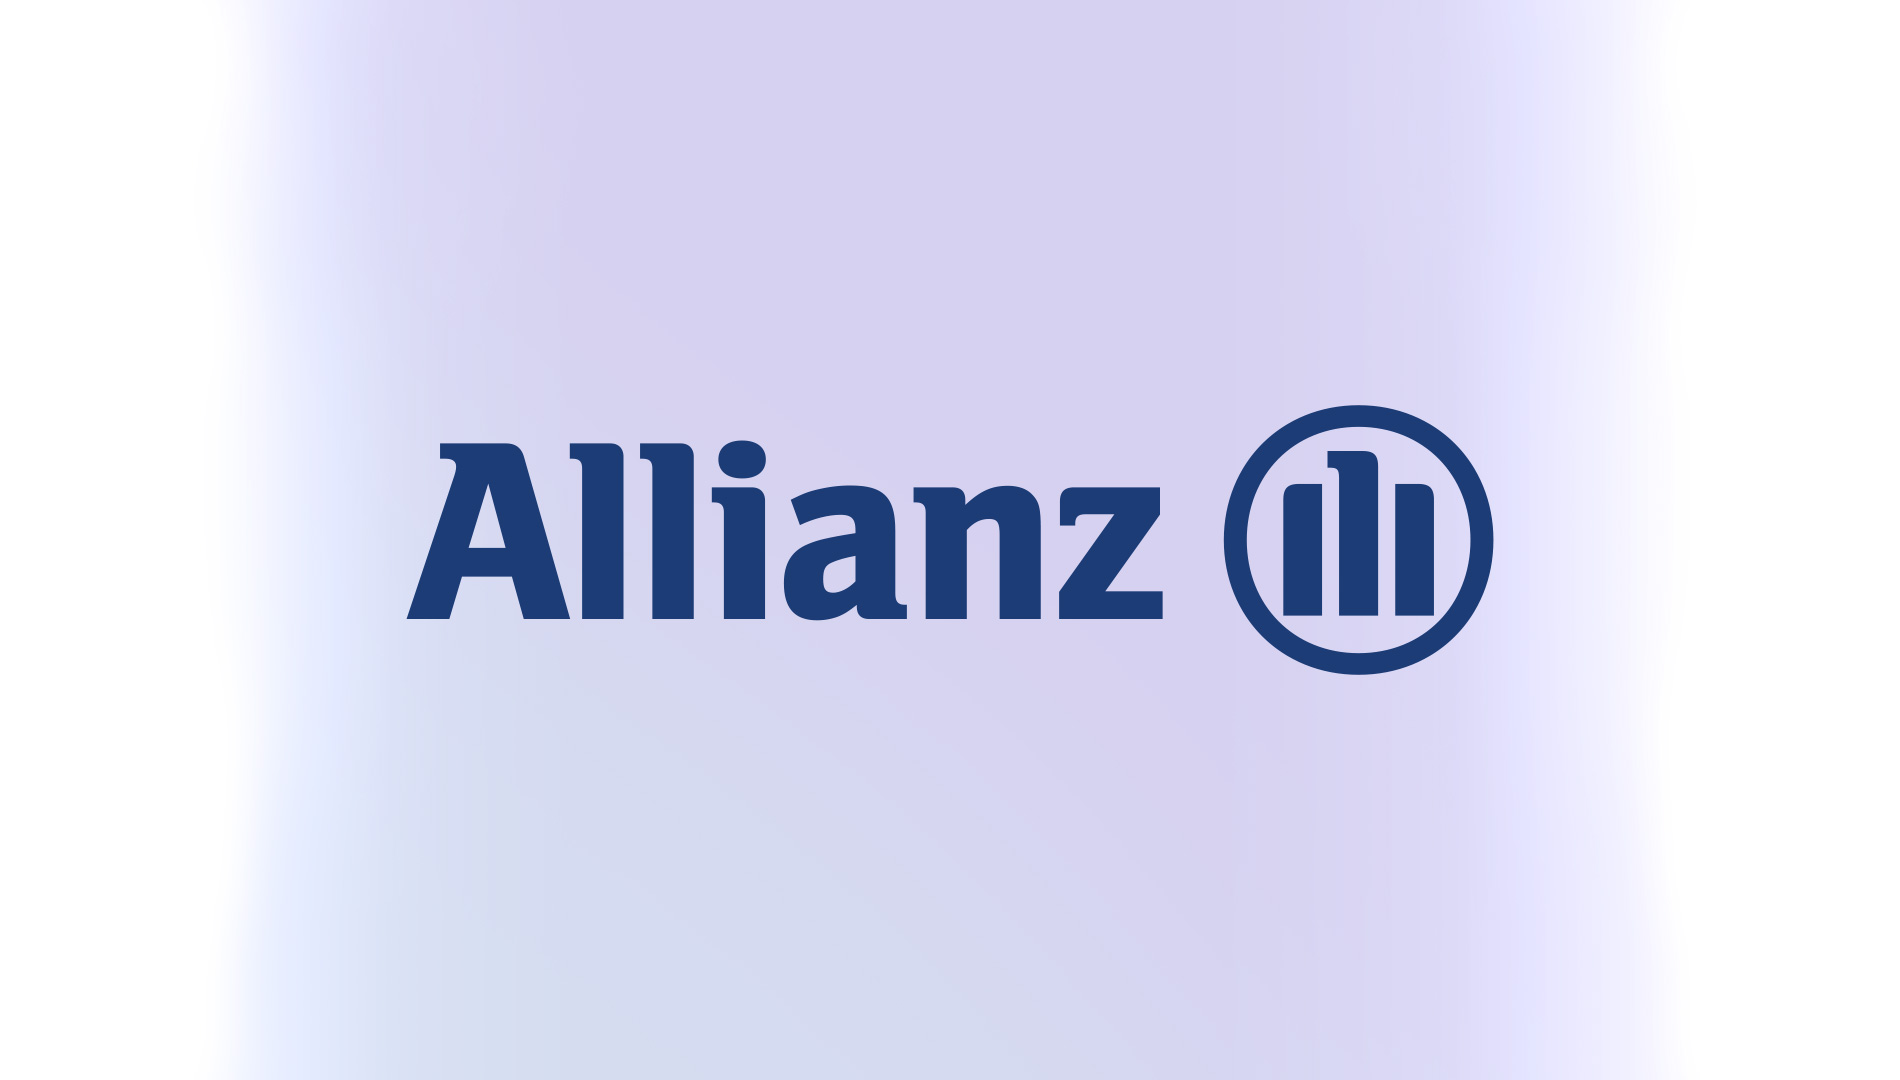 Allianz Group Slider